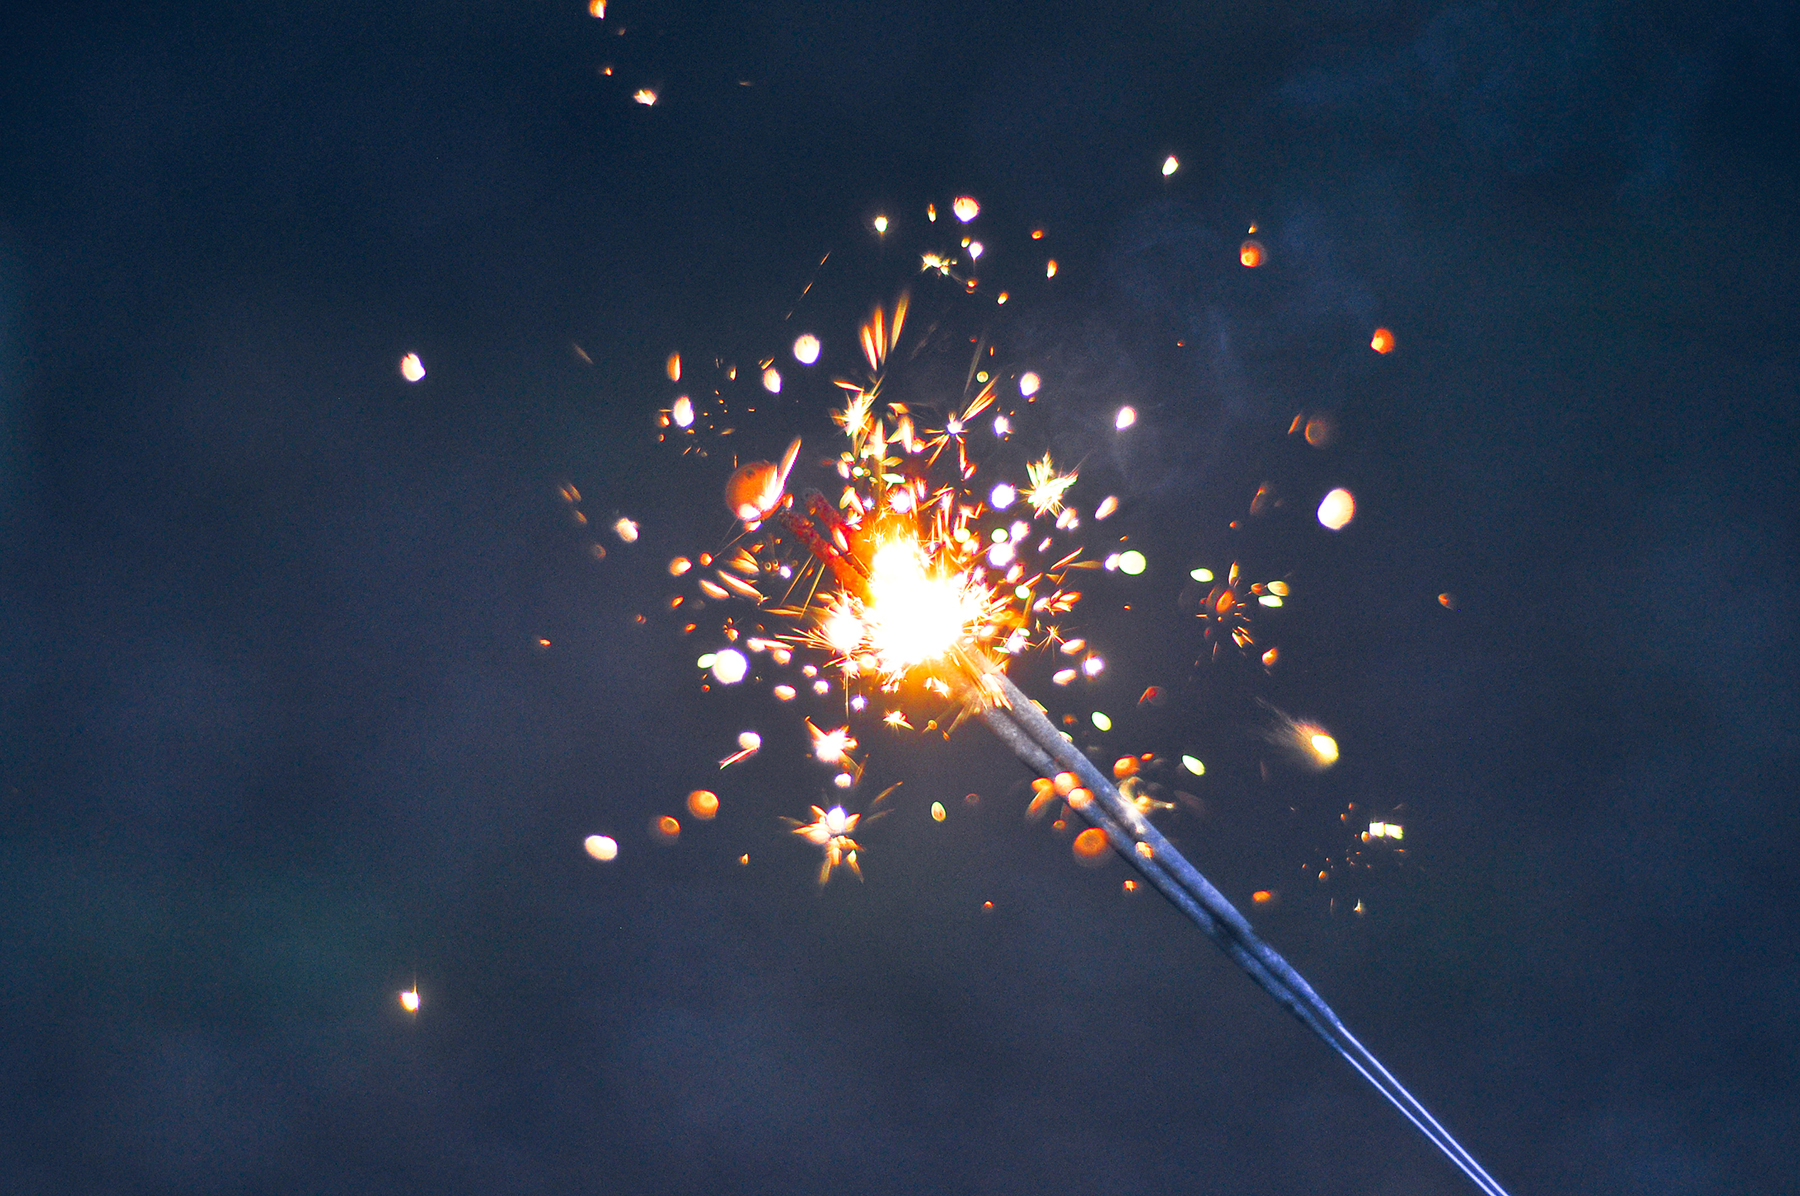 Hd Wallpaper Diwali Light The Awesome Physics In A Simple Sparkler Wired